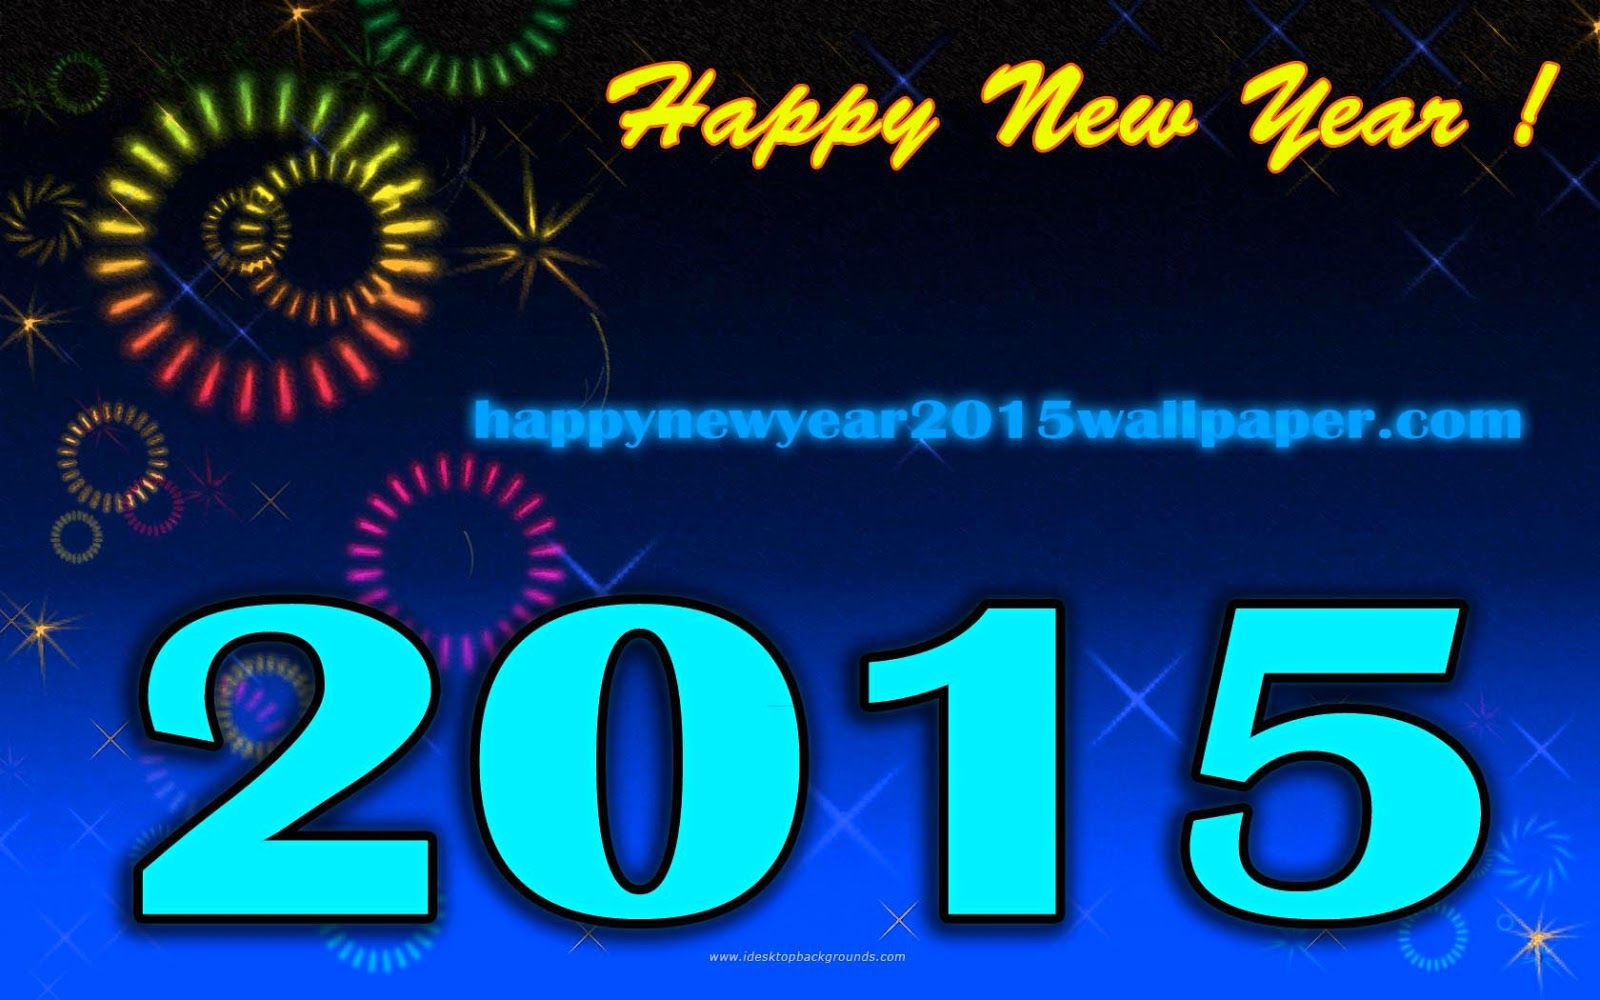 Beautiful Happy New Year 2015 Wallpaper For Greetings Happy New